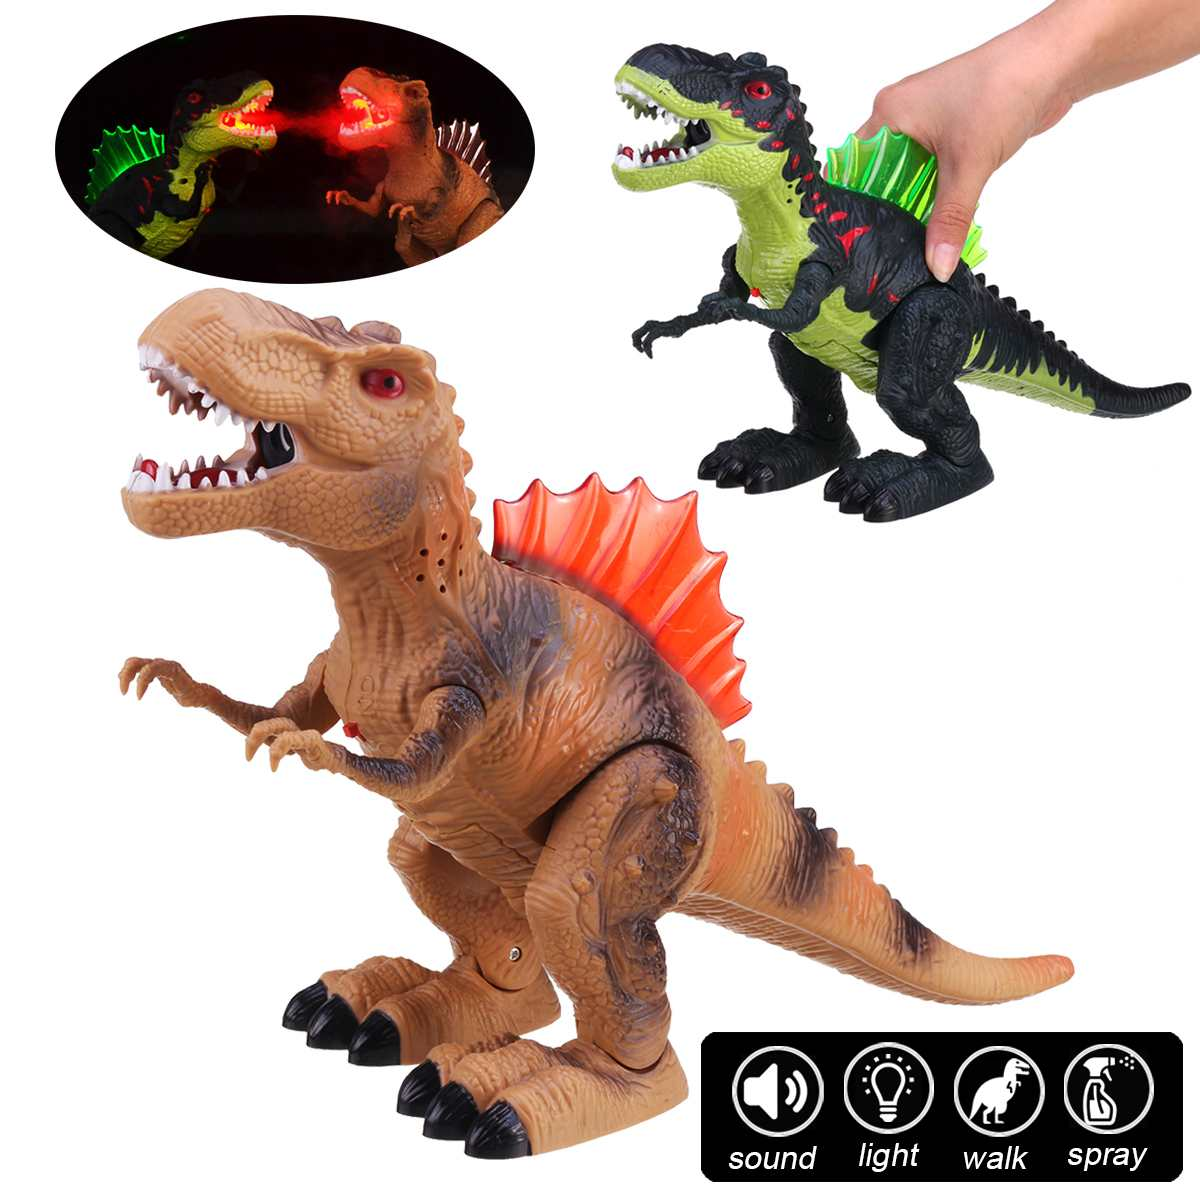 Large Electric Interactive Walking Dinosaur Toy With Light Spray Sound Early Educational Toys For Children Kids Gift